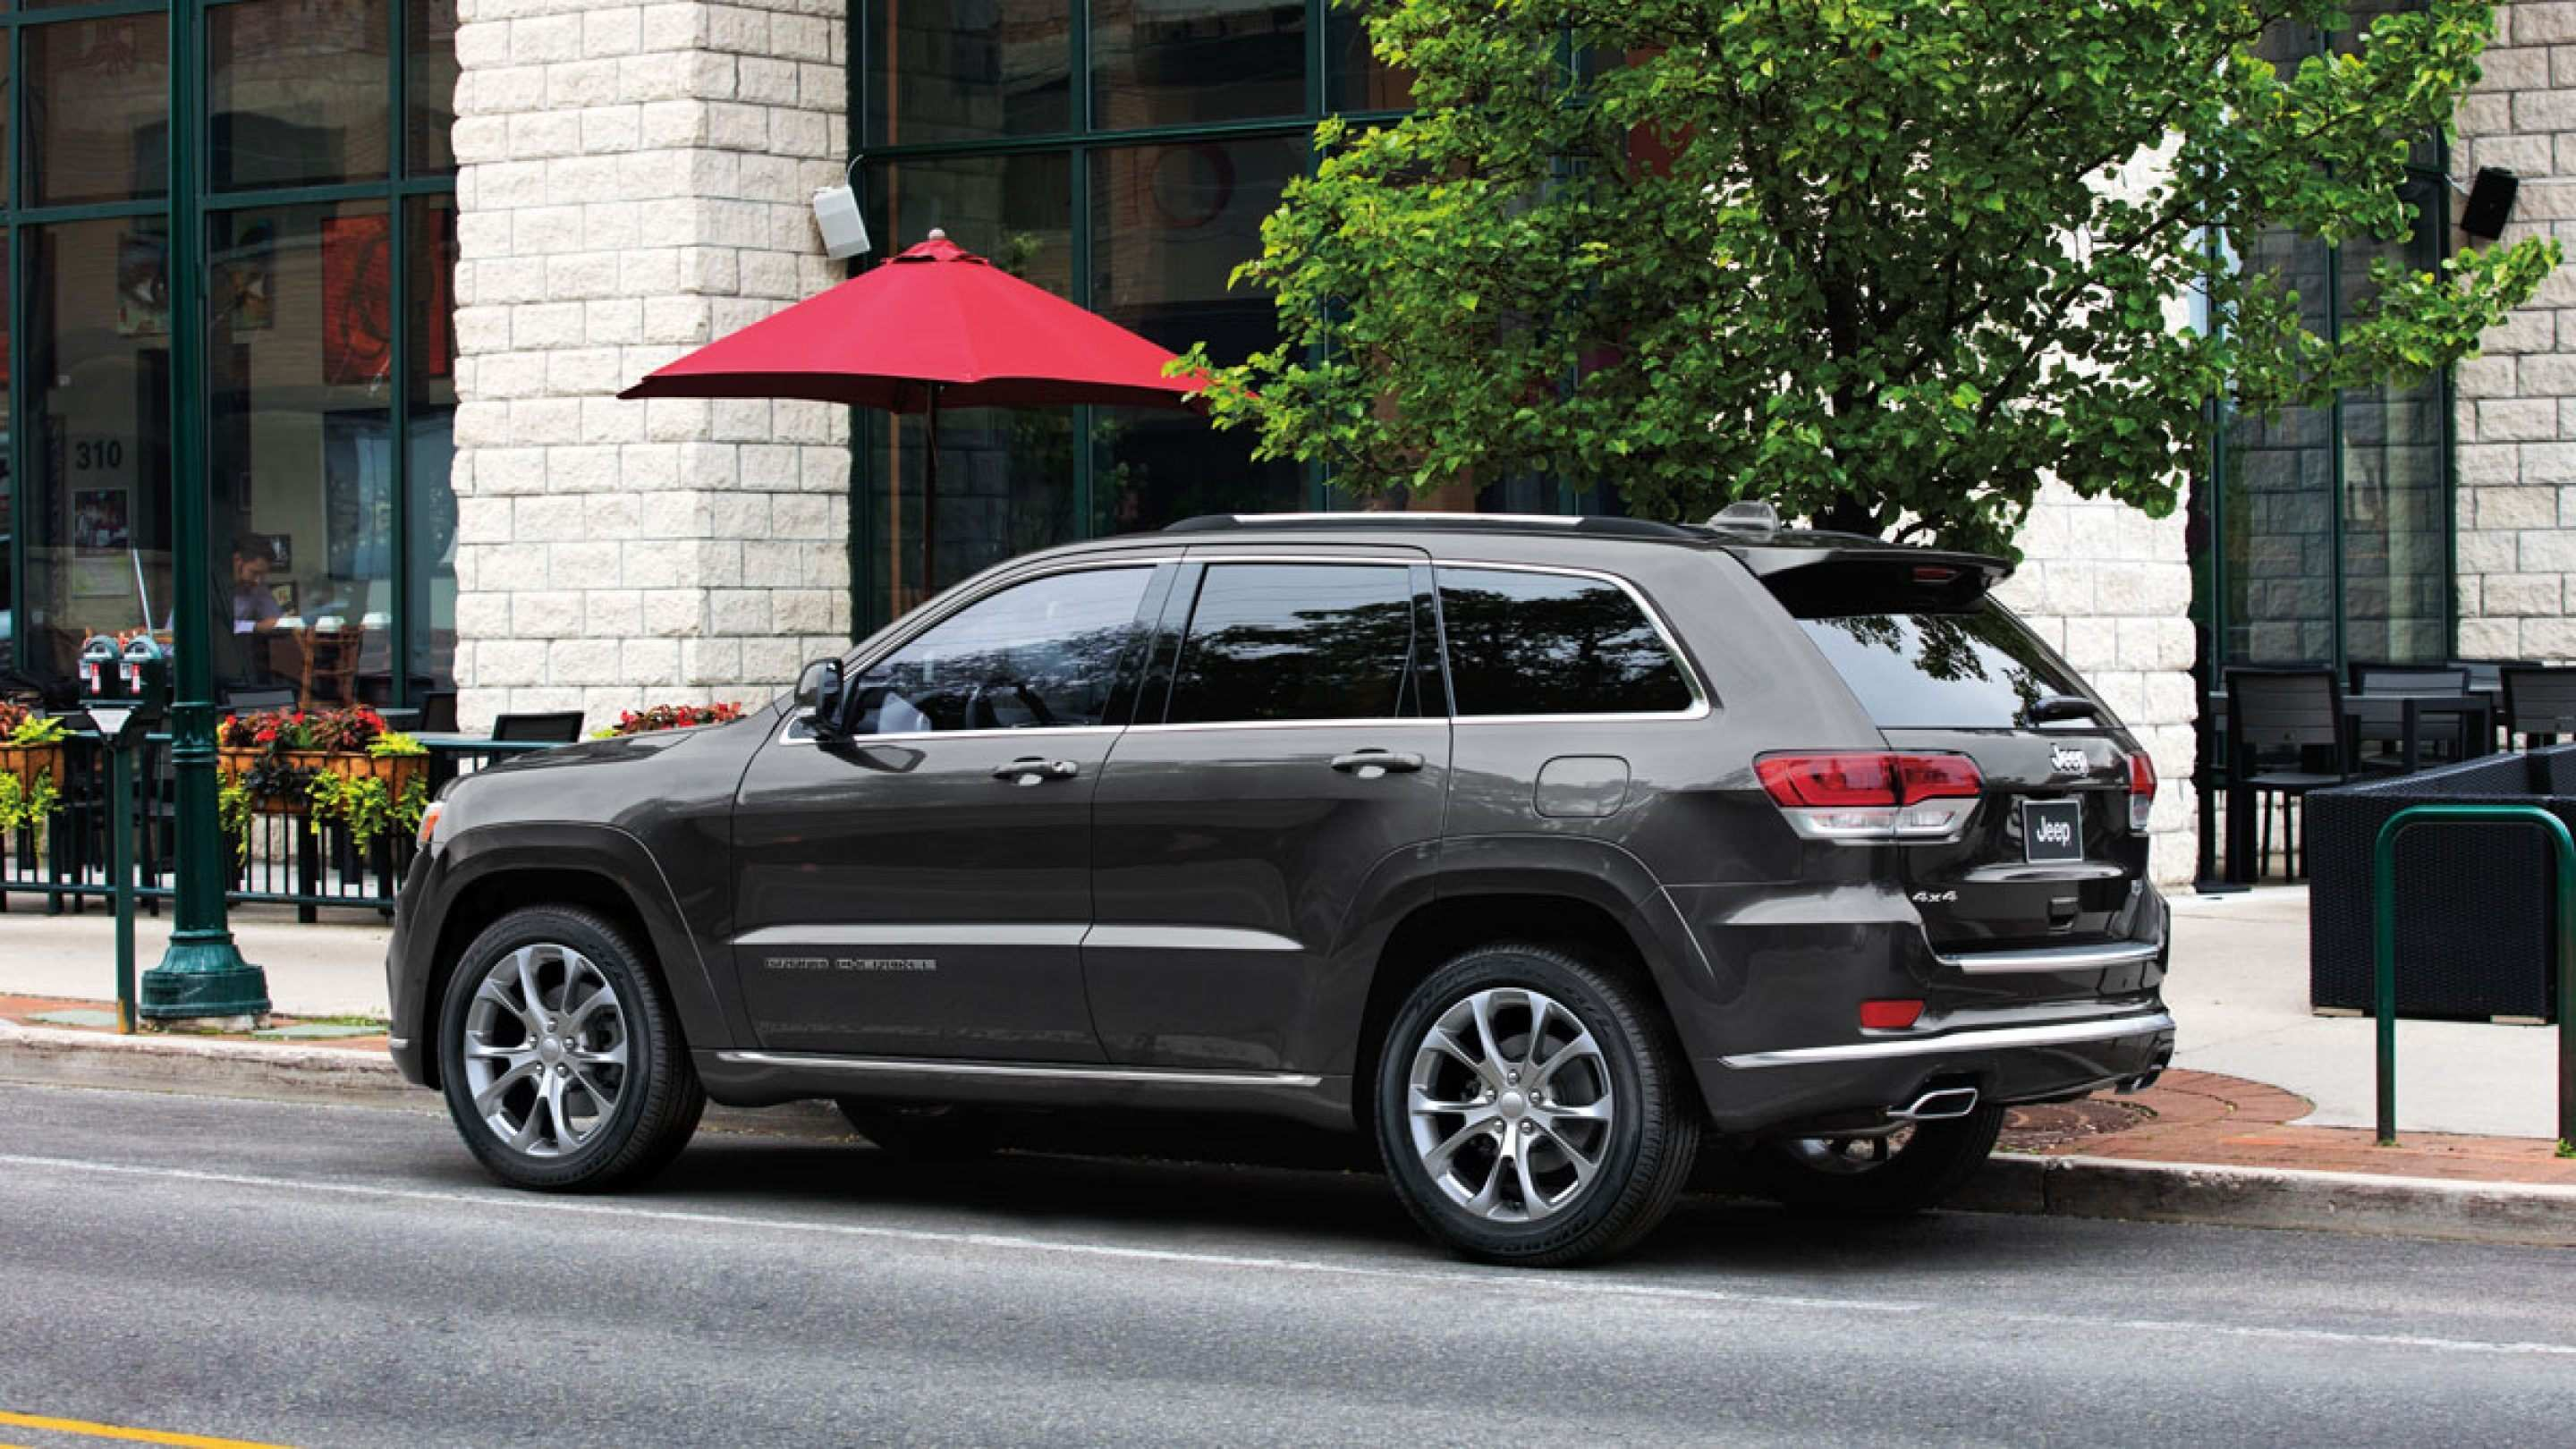 74 New 2019 Jeep Laredo Price Design And Review